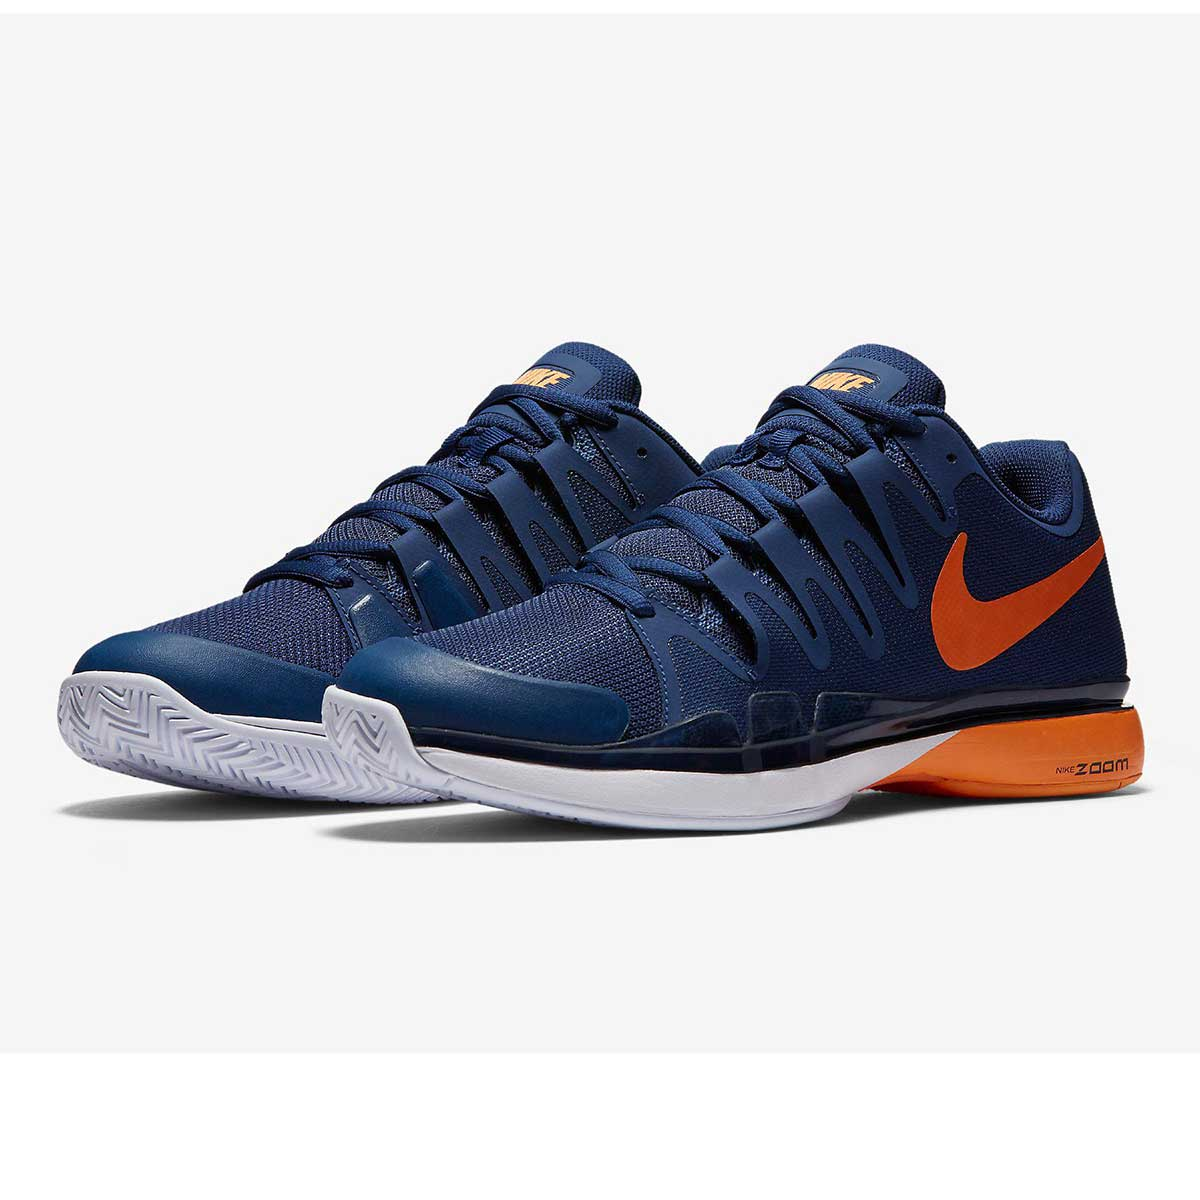 91cbd8f650a93 Buy Nike Zoom Vapor 9.5 Tour Tennis Shoes (Blue/Bright Citrus) Online